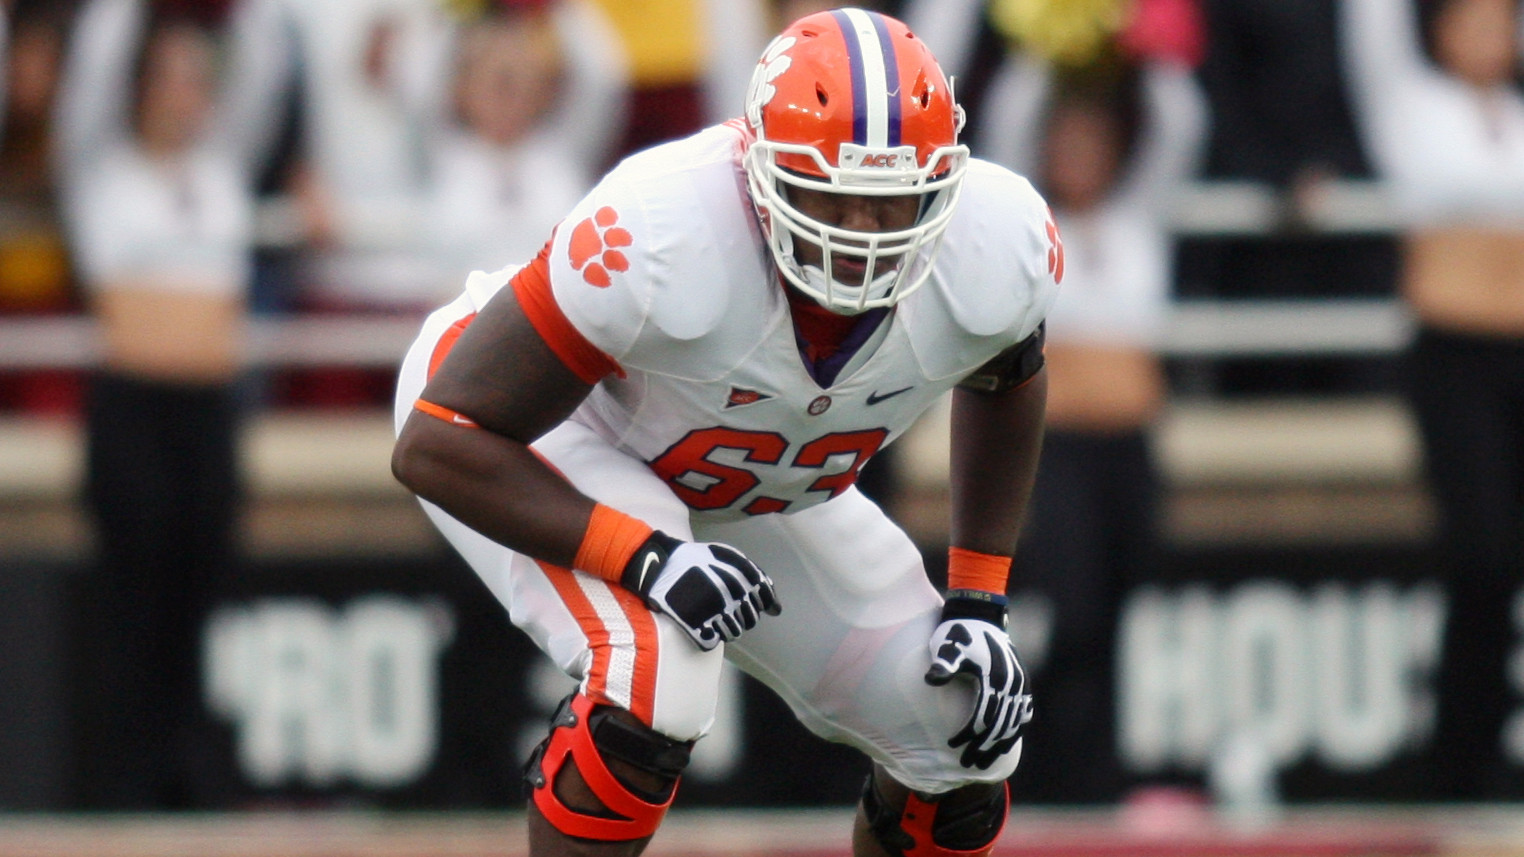 Thomas Named to Outland Trophy Watch List